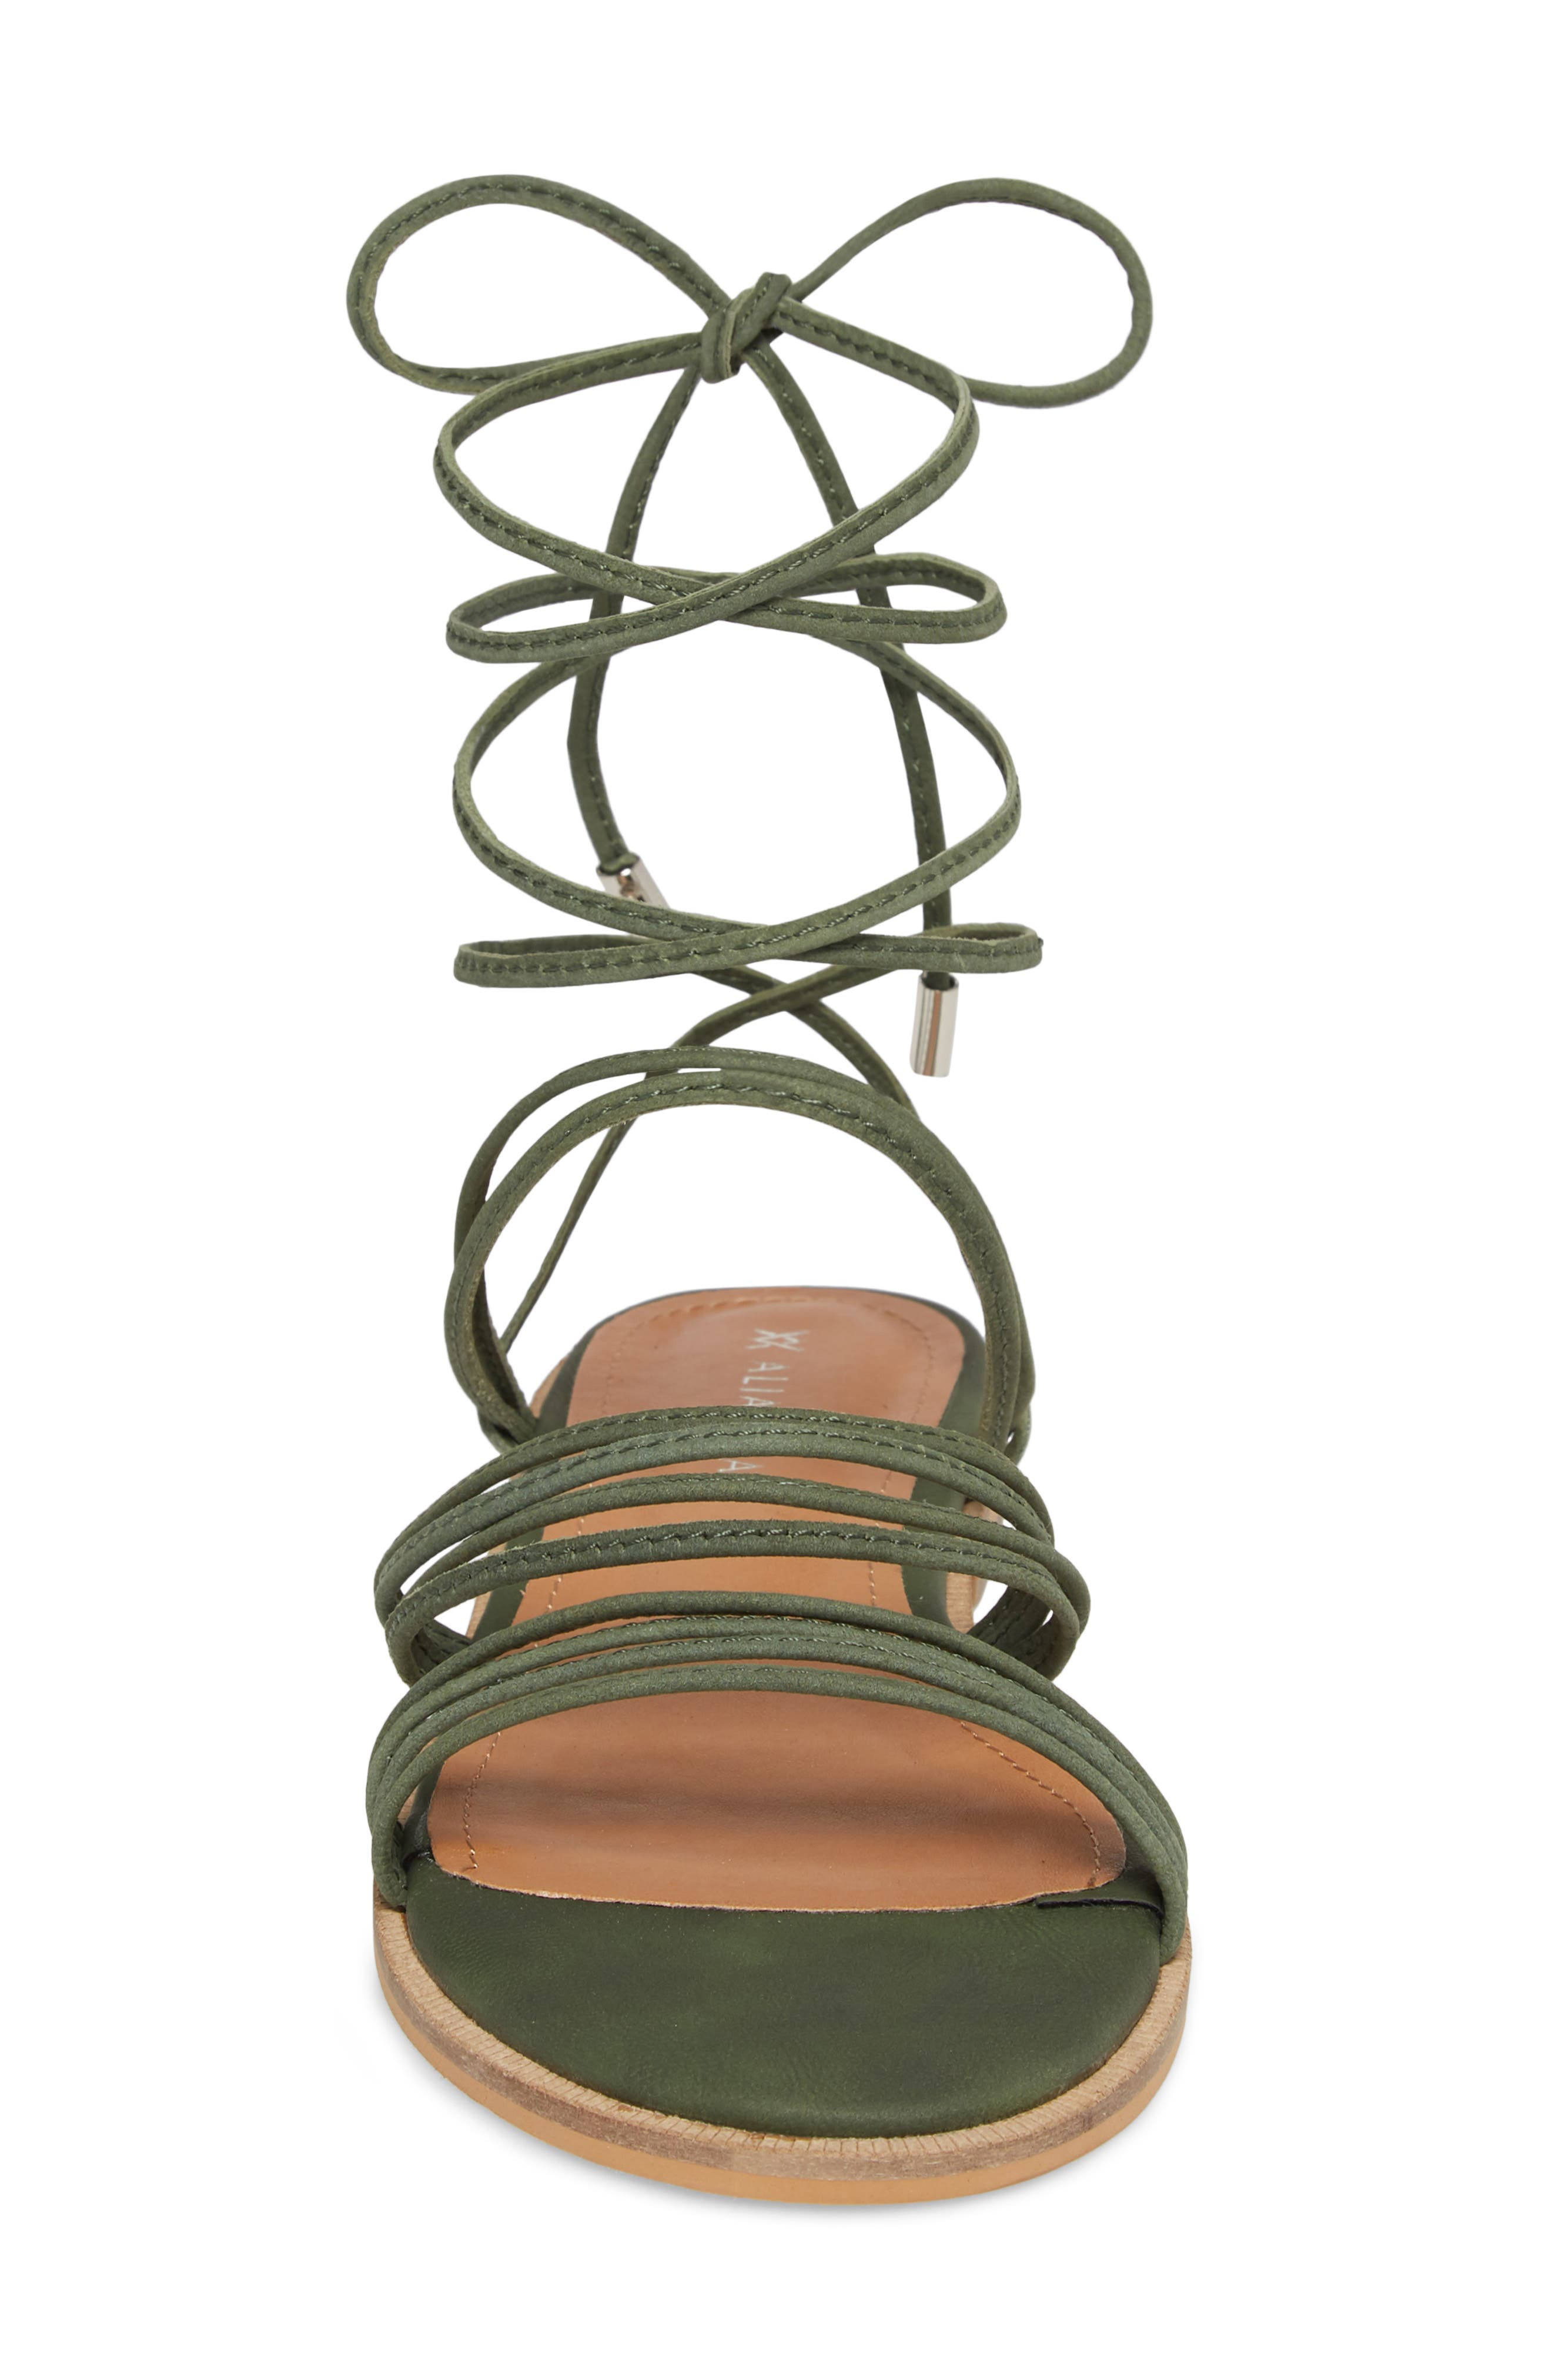 Theory Strappy Flat Sandal,                             Alternate thumbnail 12, color,